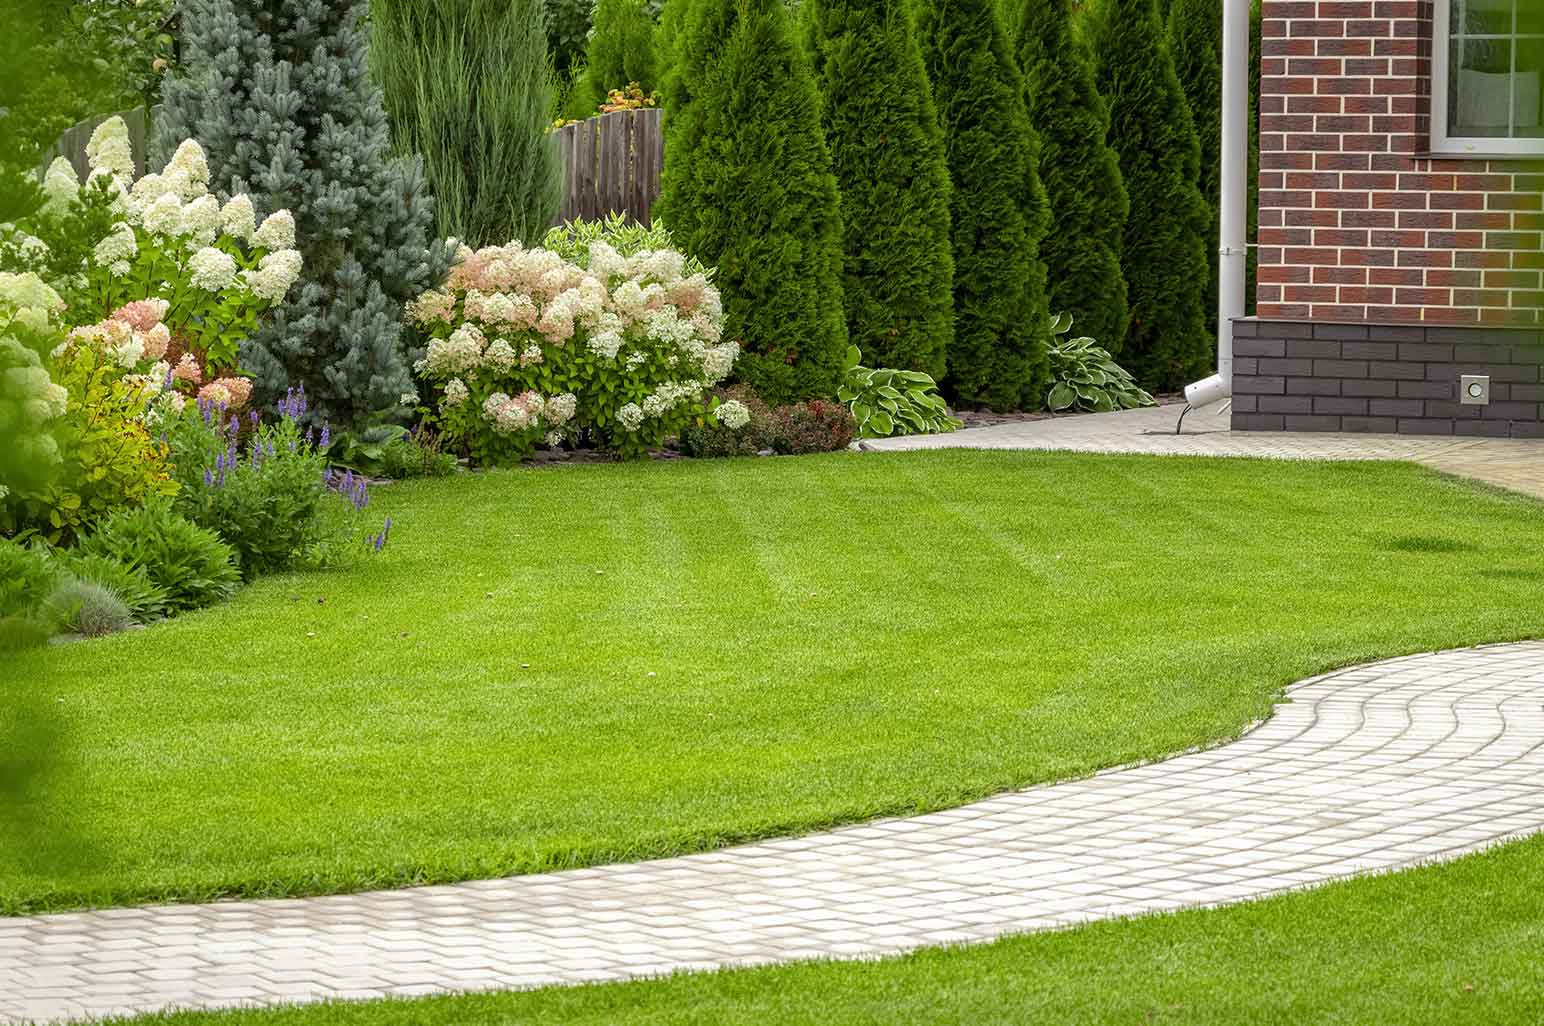 Tips to Keep Your Lawn Looking Good